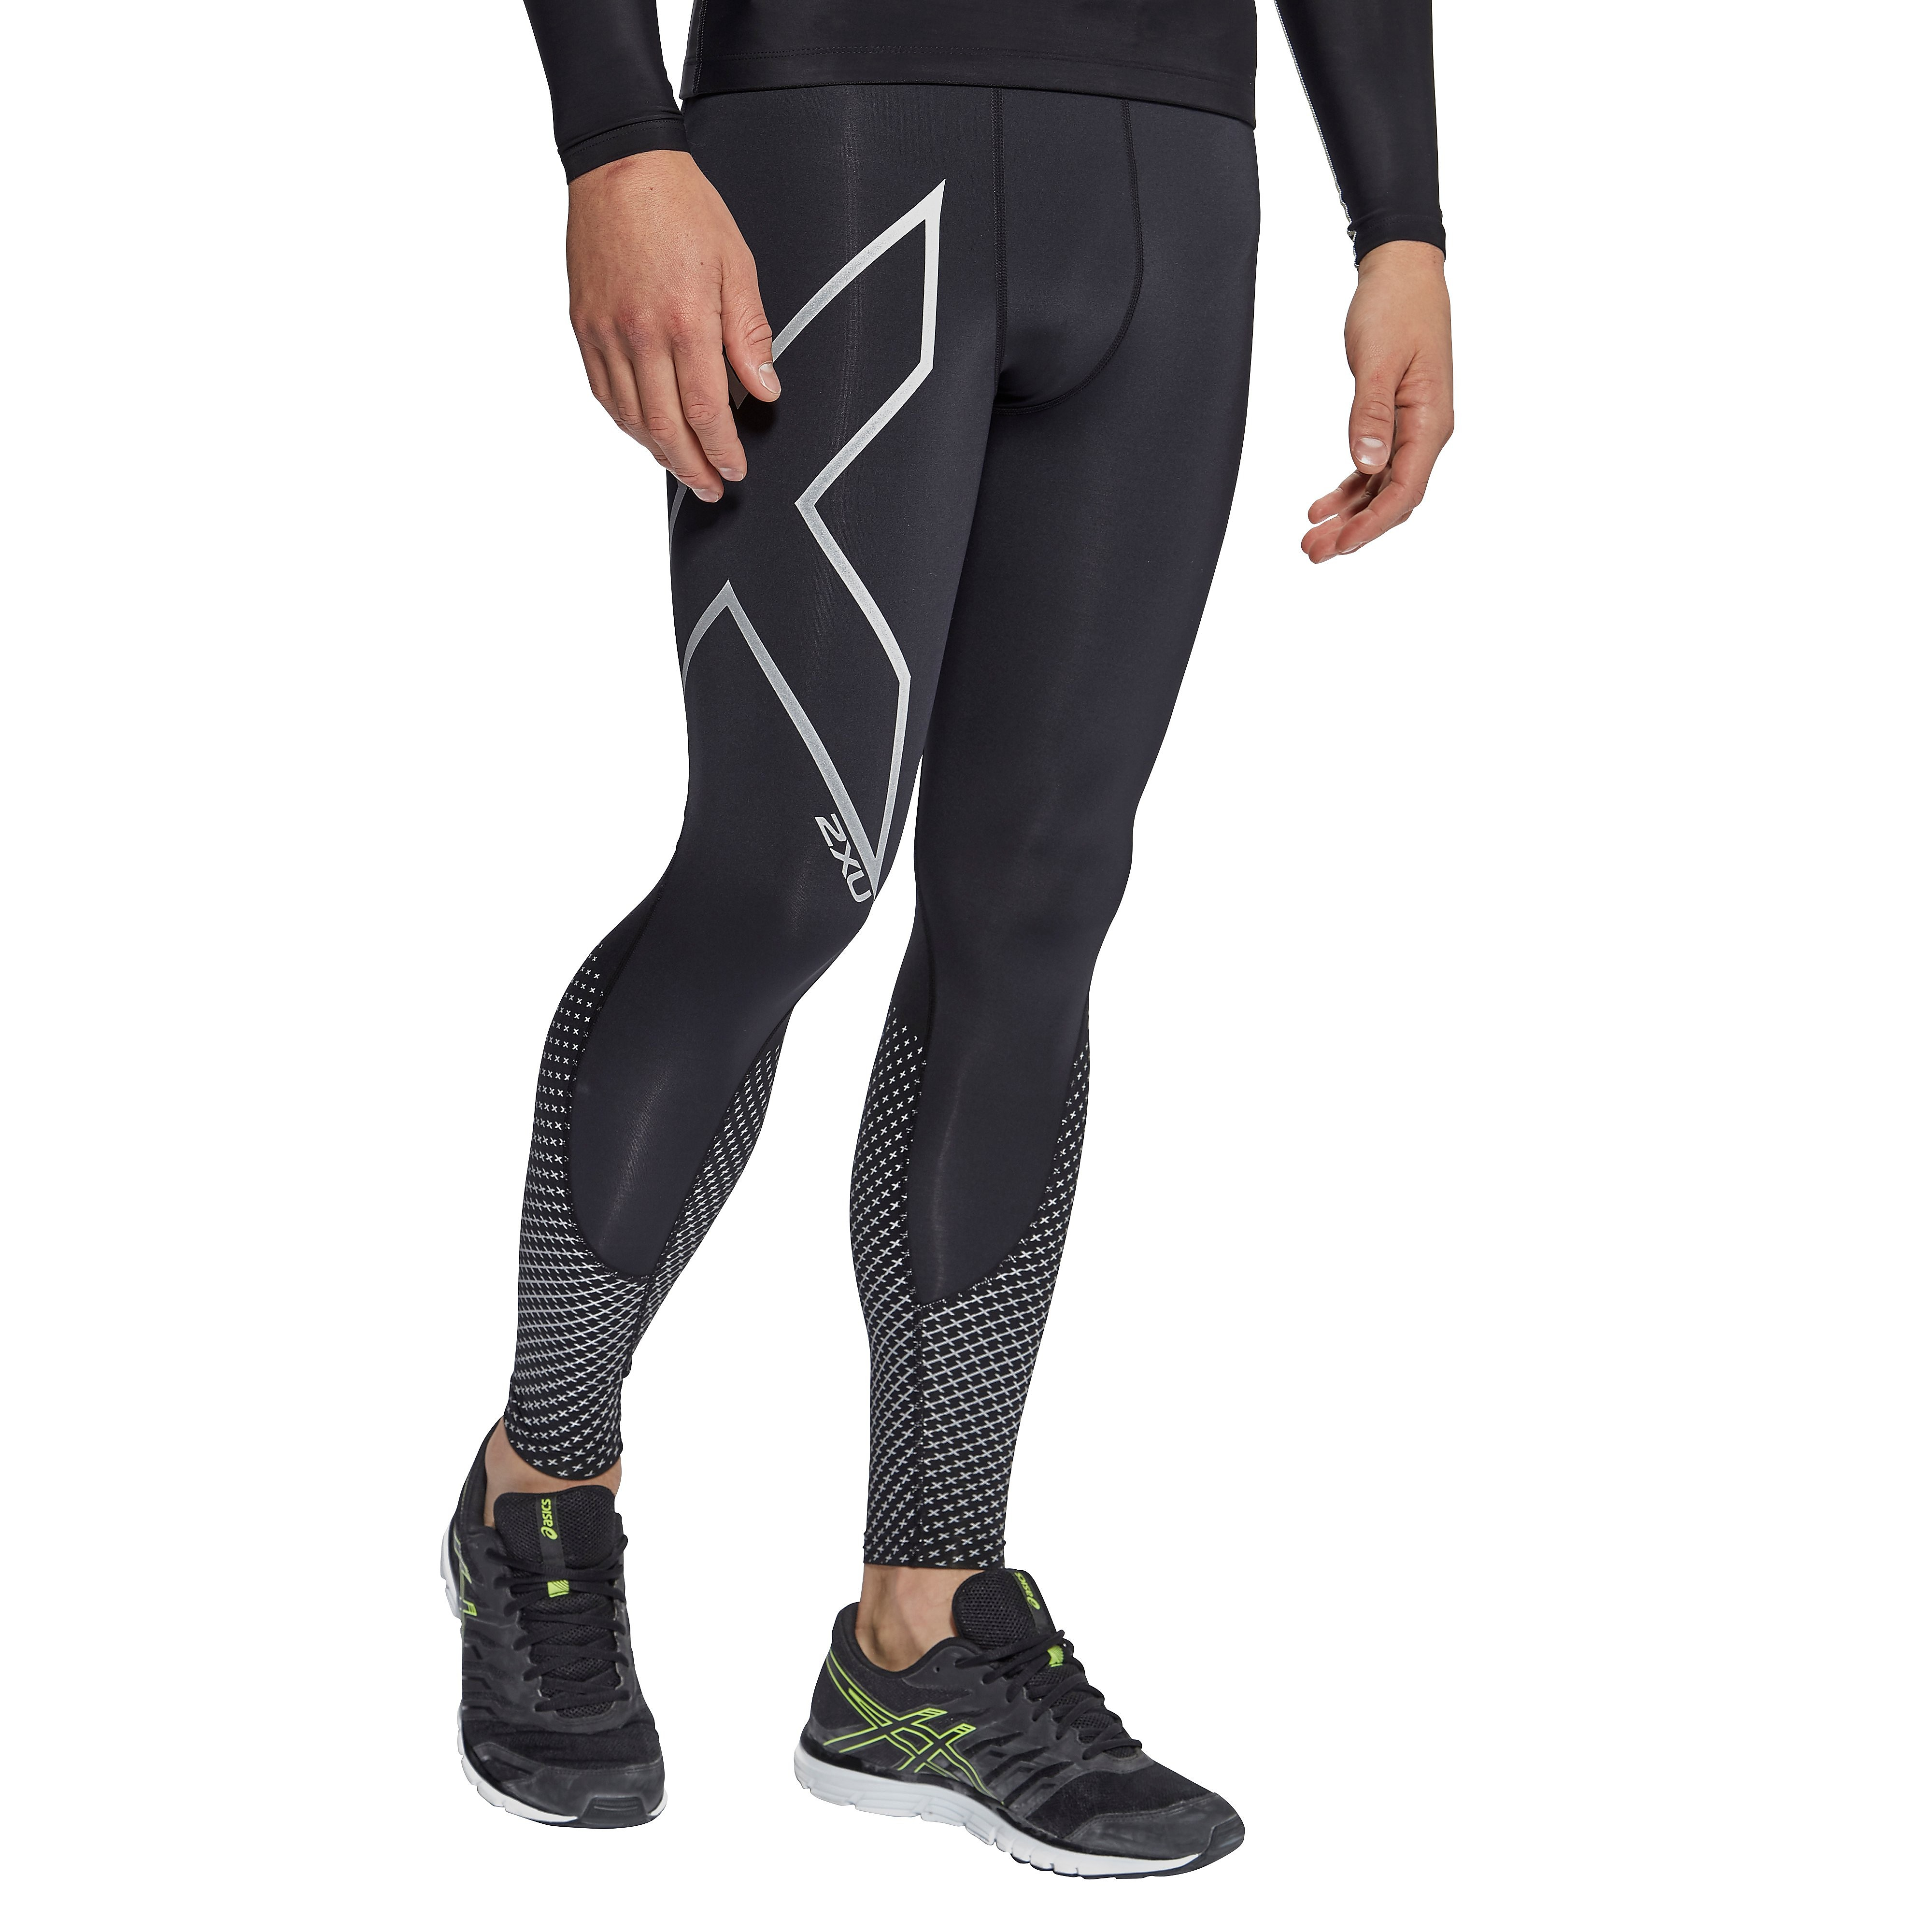 2XU Reflective Men's Compression Tights